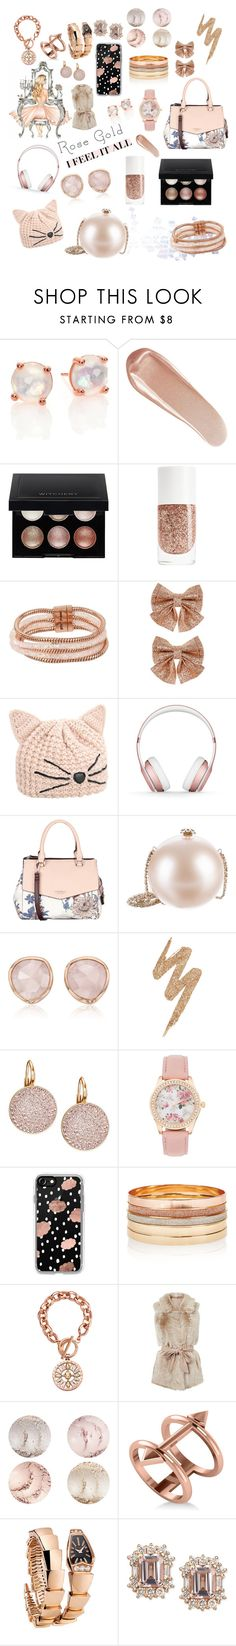 """""""Untitled #68"""" by devrene ❤ liked on Polyvore featuring Ippolita, NARS Cosmetics, Witchery, Betsey Johnson, Monsoon, Karl Lagerfeld, Beats by Dr. Dre, Fiorelli, Chanel and Monica Vinader"""